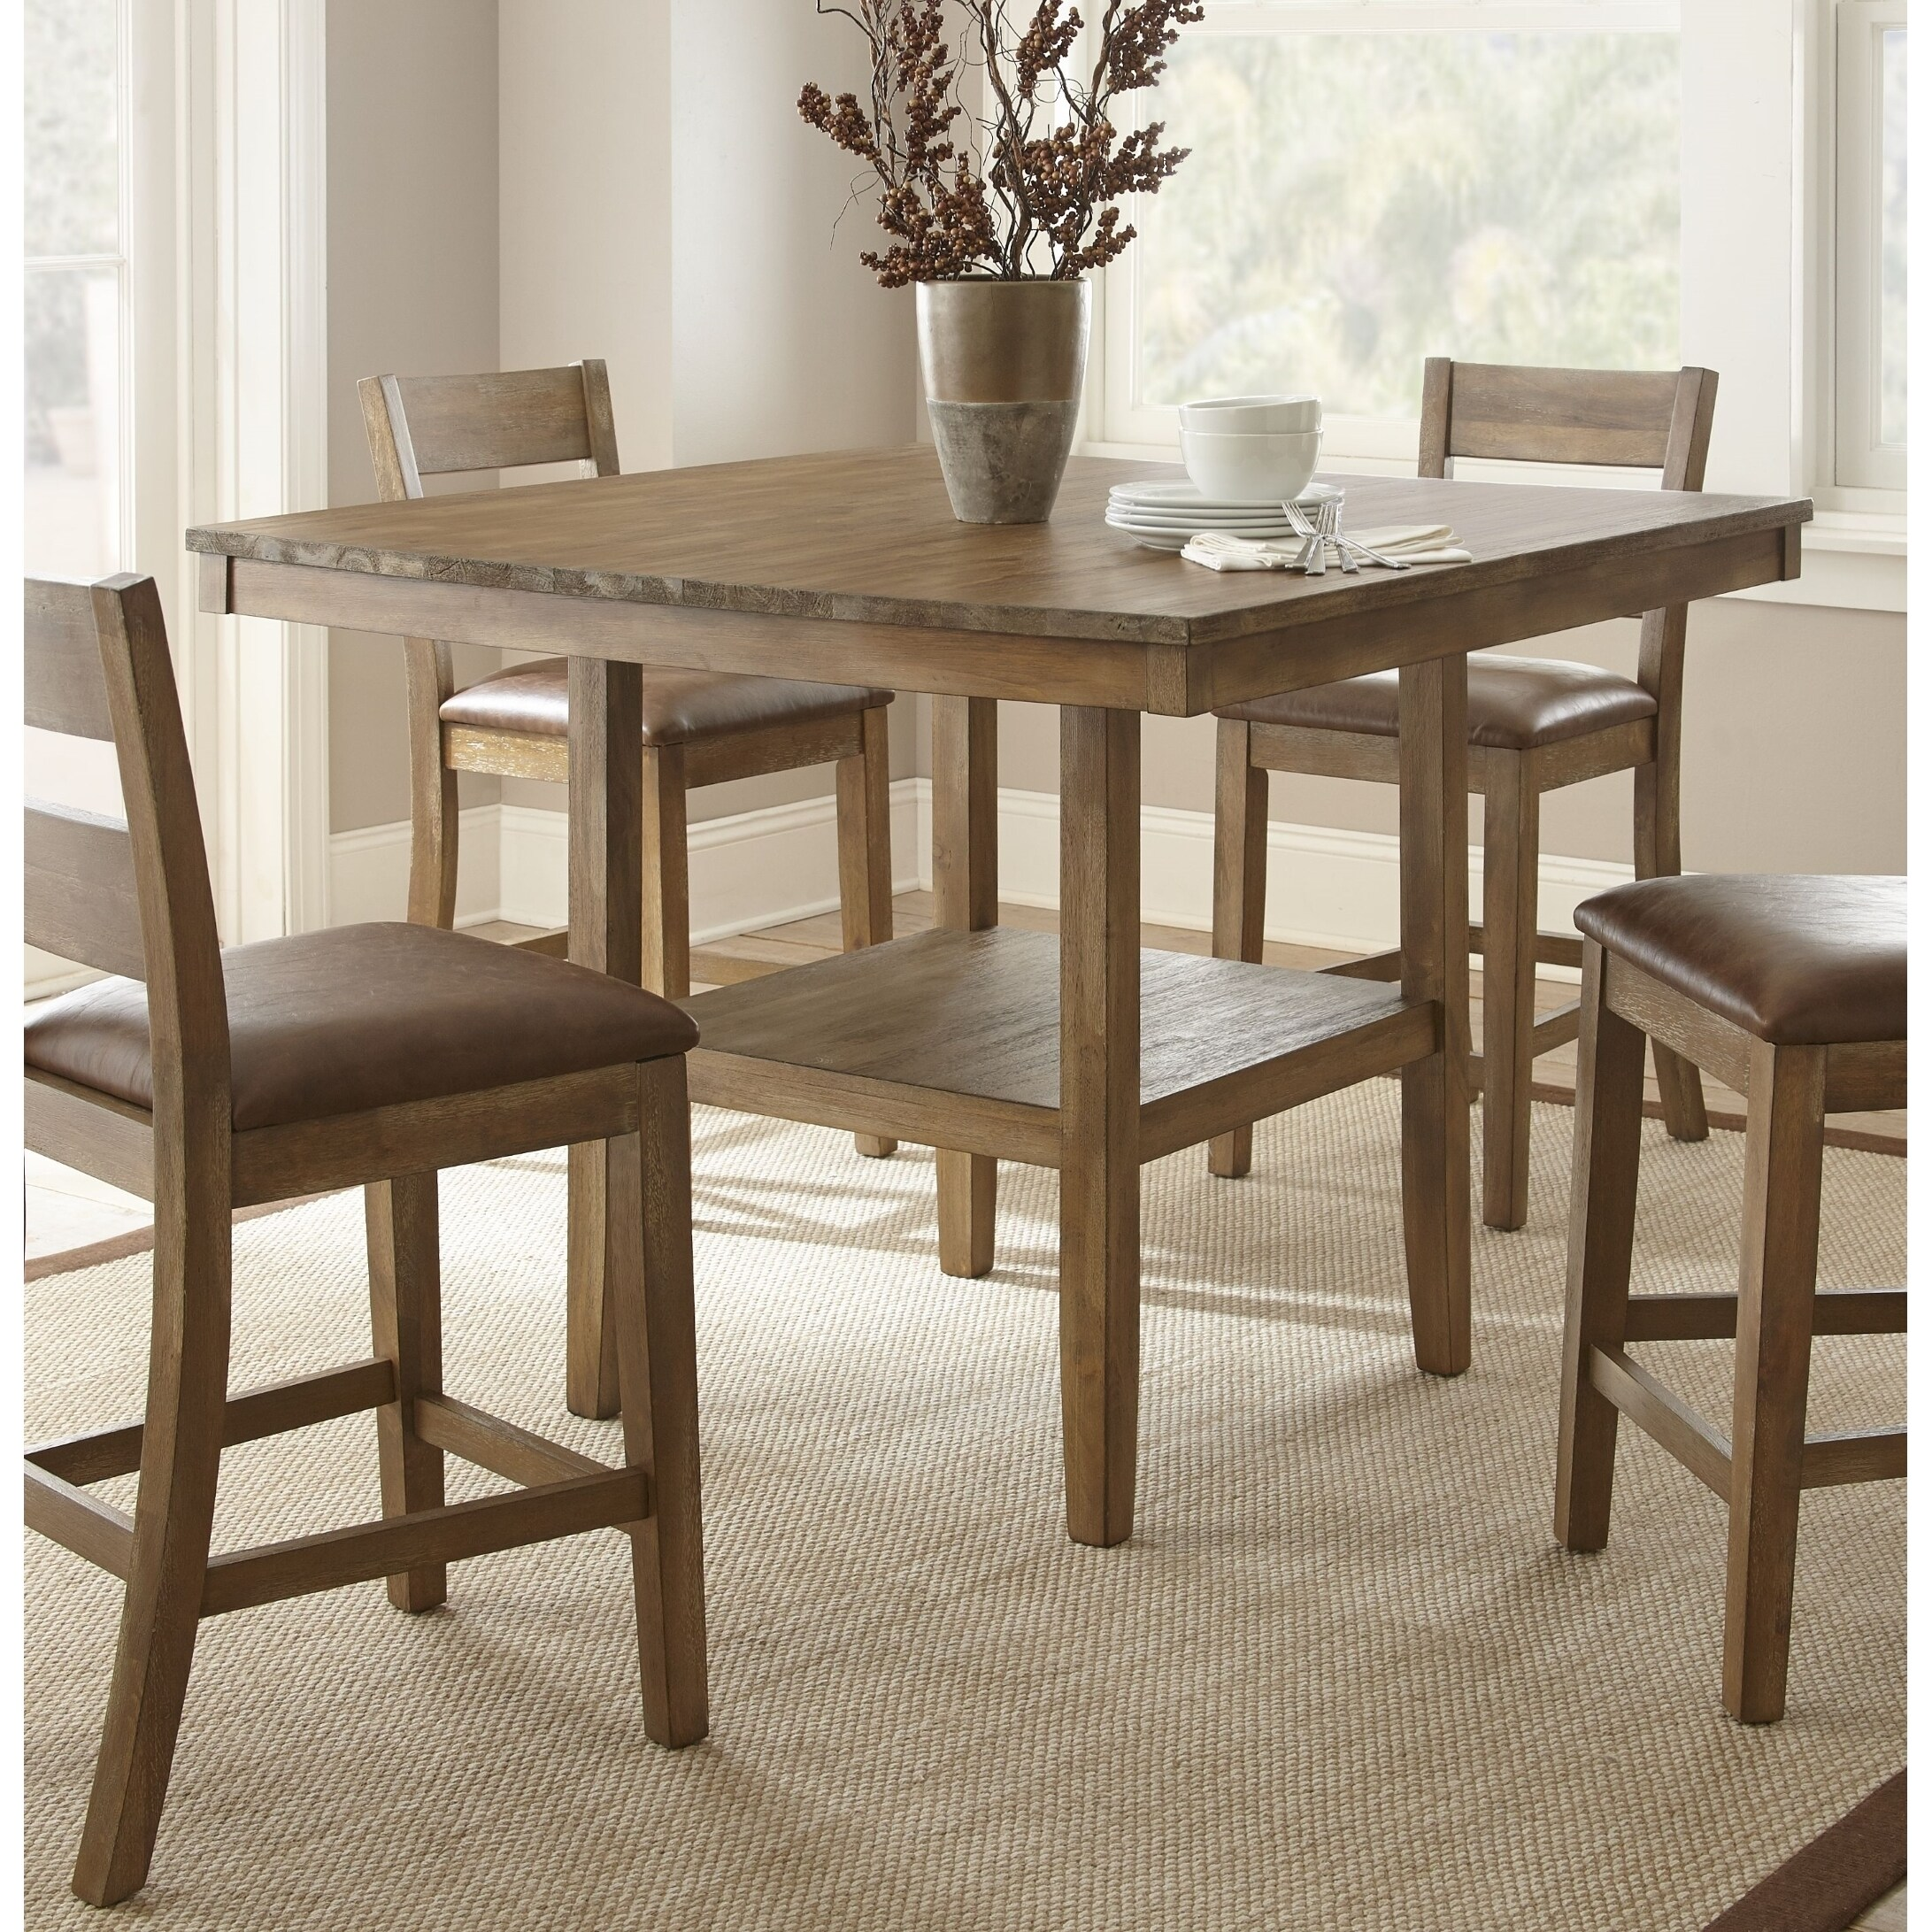 Groovy Buy Wood Square Kitchen Dining Room Tables Online At Theyellowbook Wood Chair Design Ideas Theyellowbookinfo